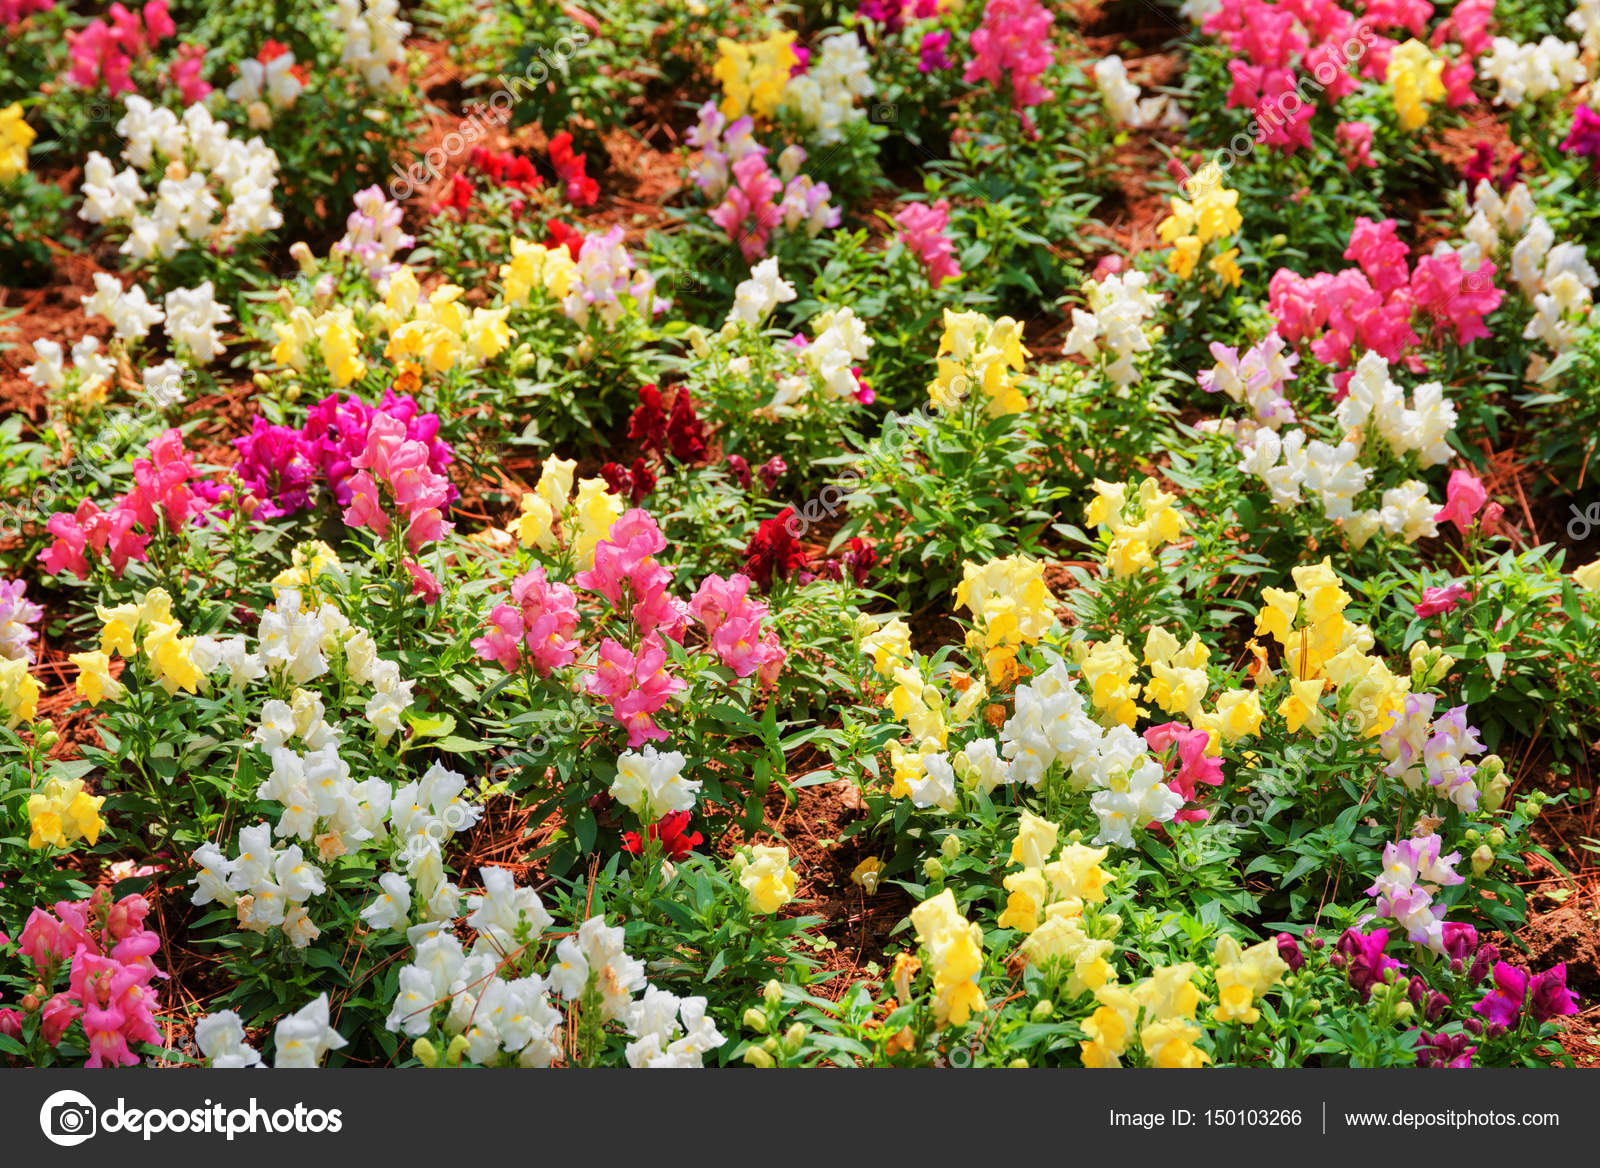 Beautiful Colorful Snapdragon Flowers Antirrhinum In Garden